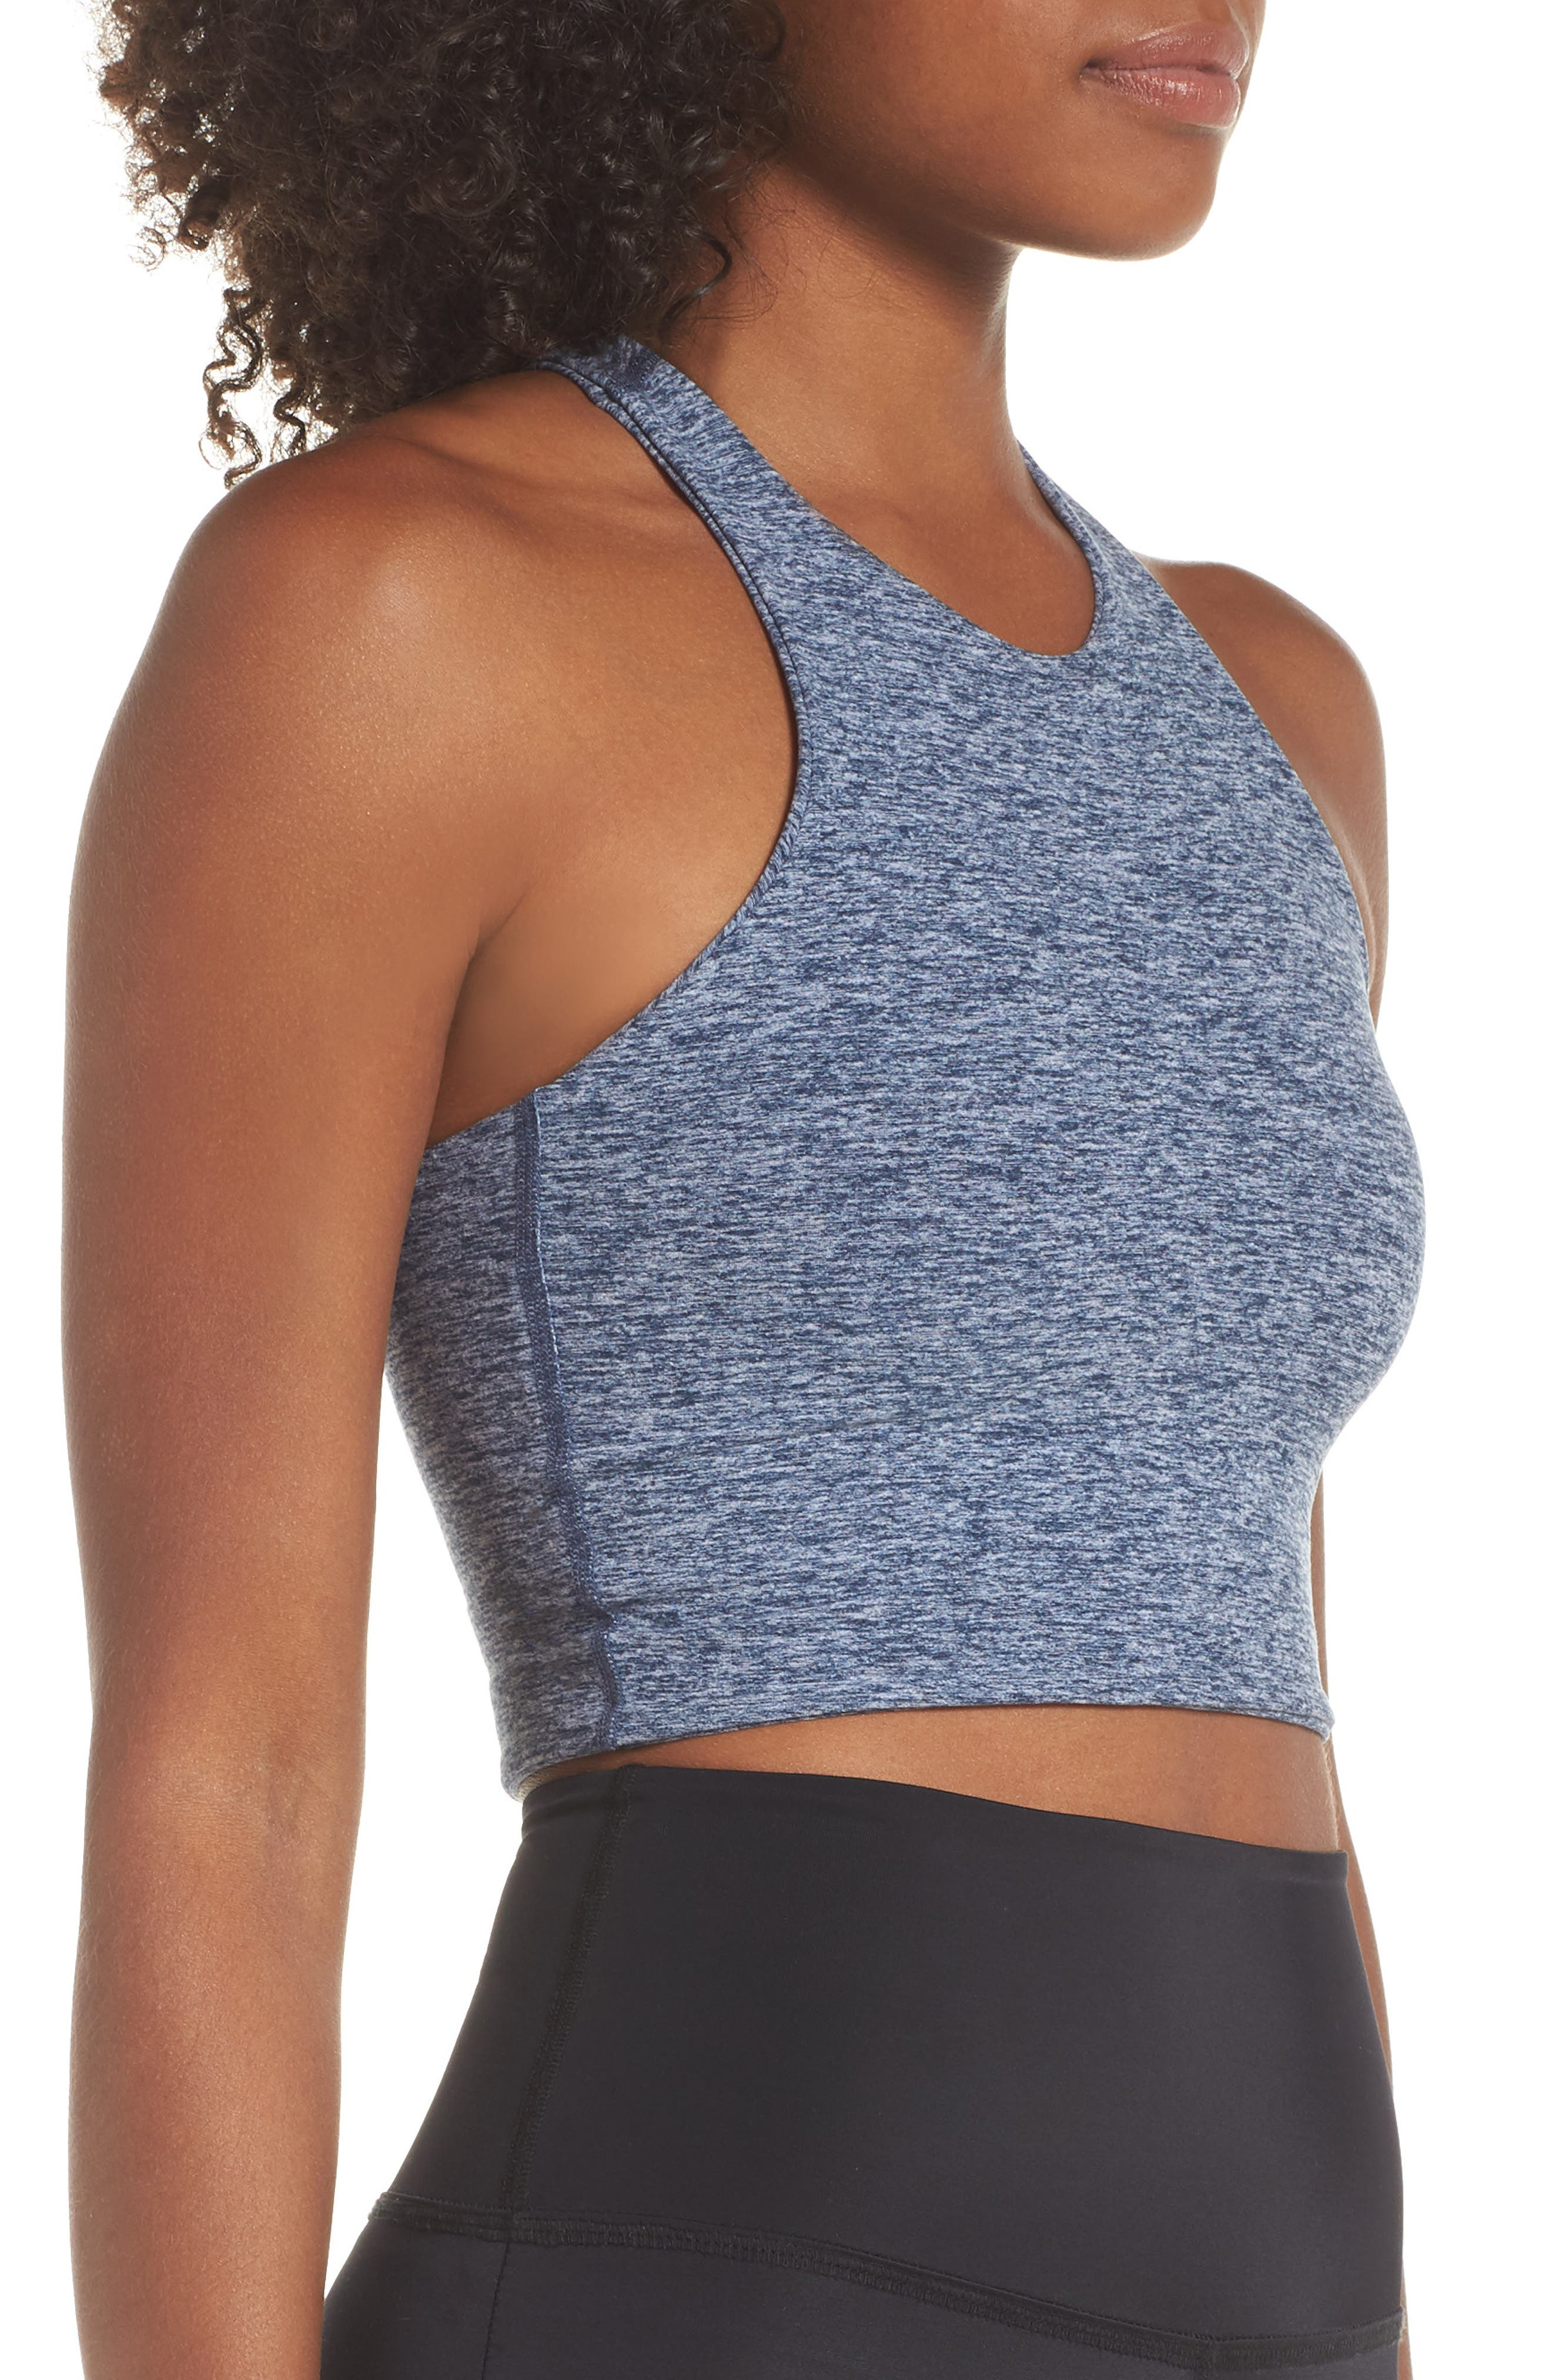 Across the Strap Cropped Top,                             Alternate thumbnail 3, color,                             WHITE/ OUTLAW NAVY